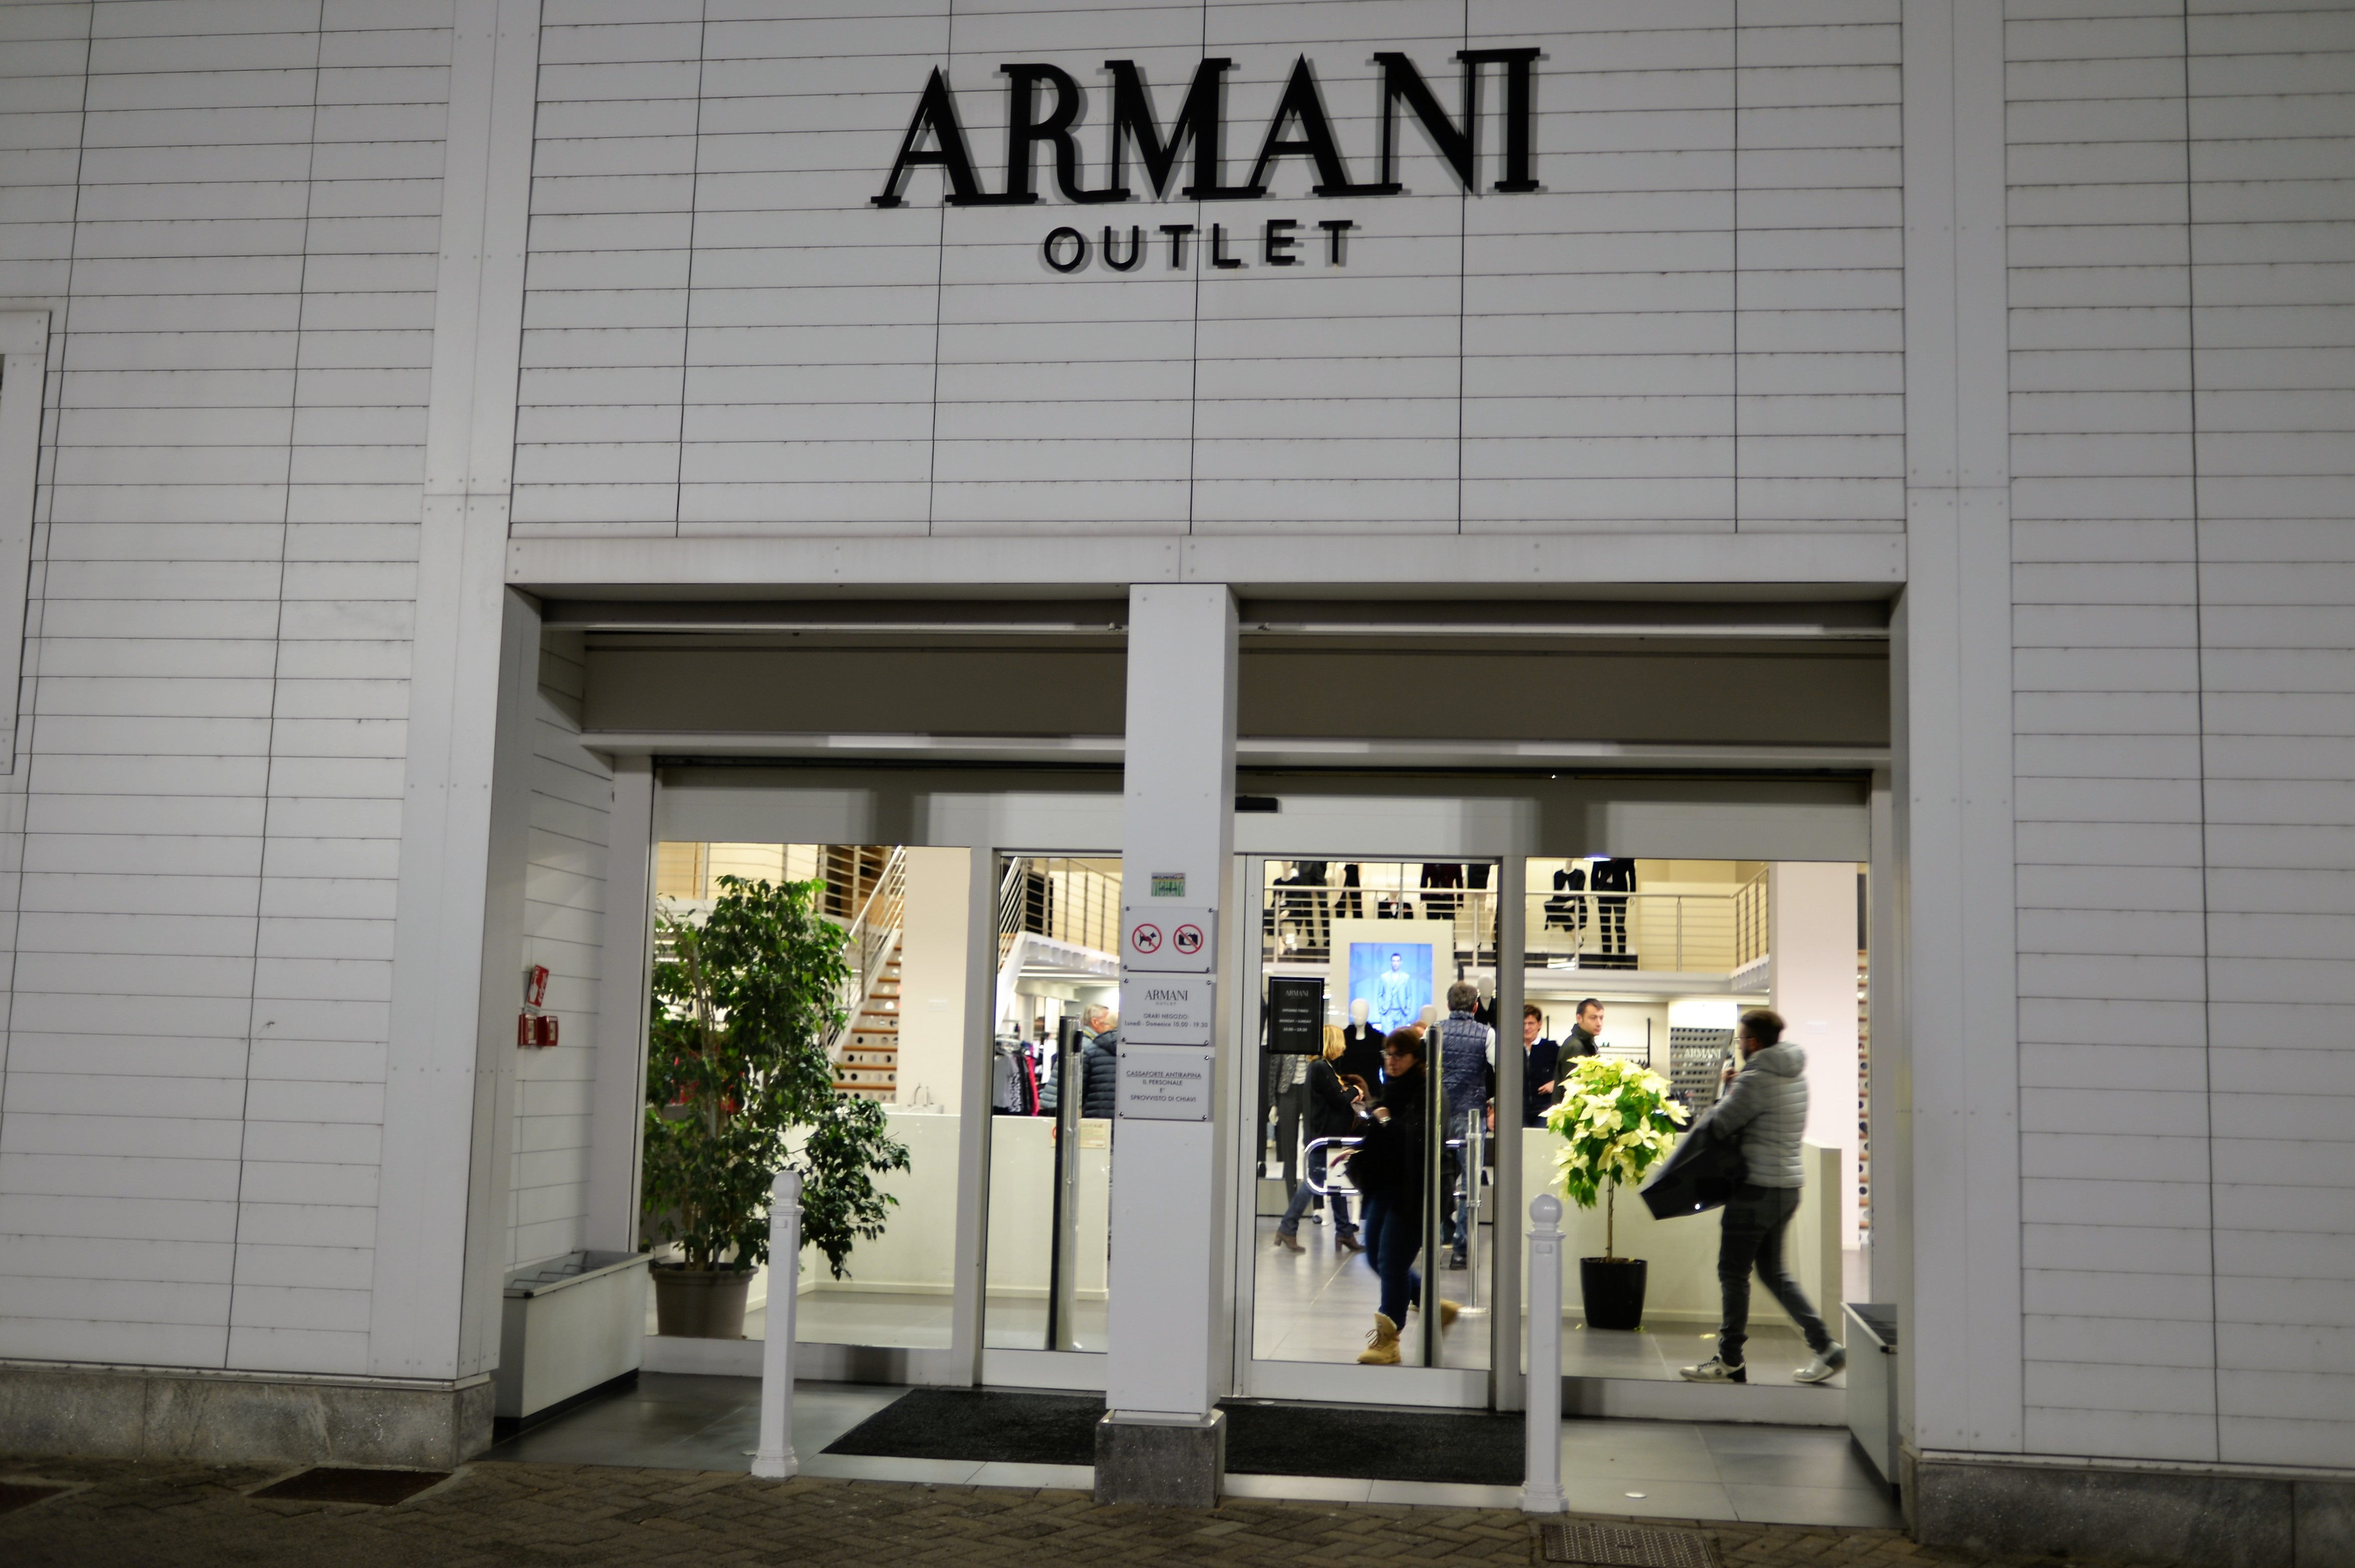 STK 0643 - アルマーニアウトレット(ARMANI outlet)